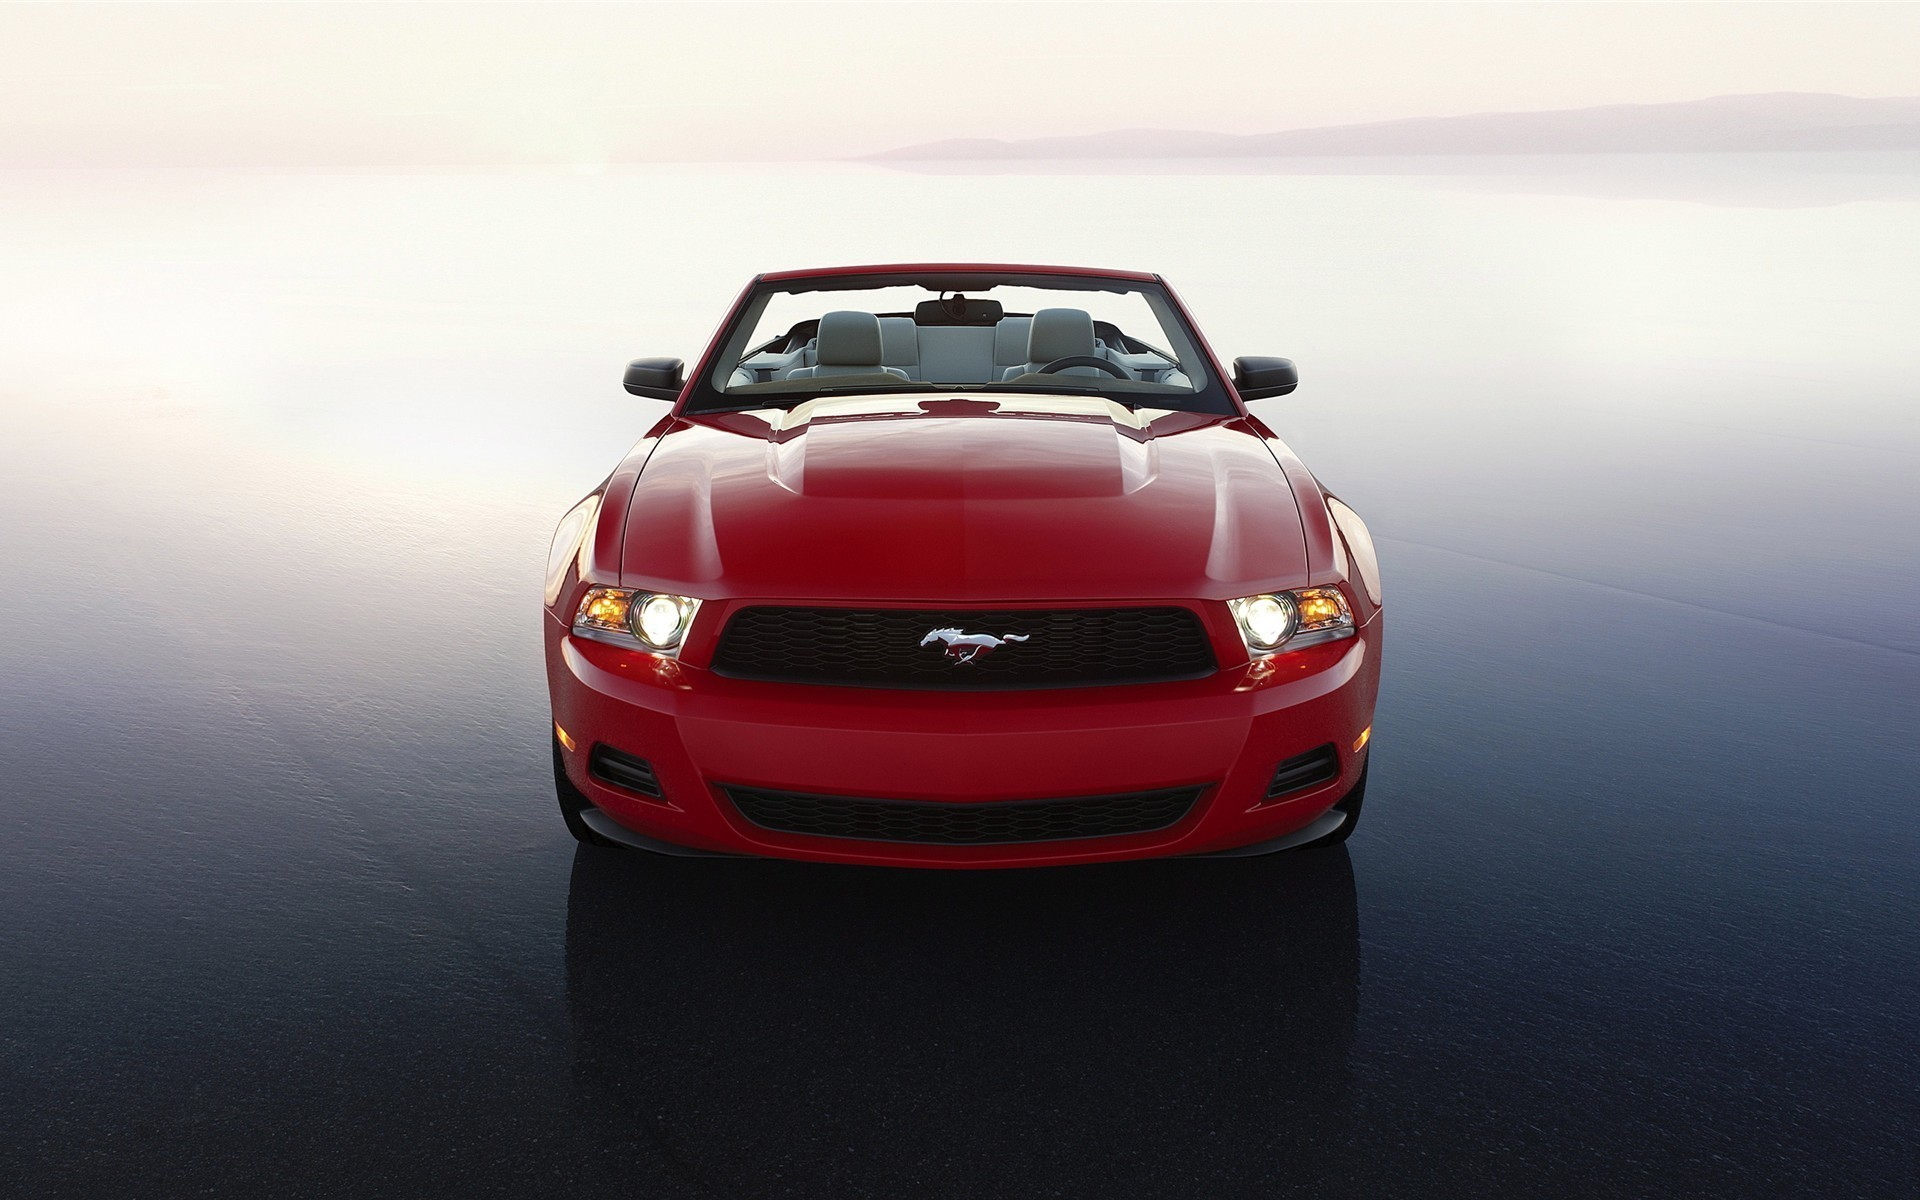 Ford Mustang images